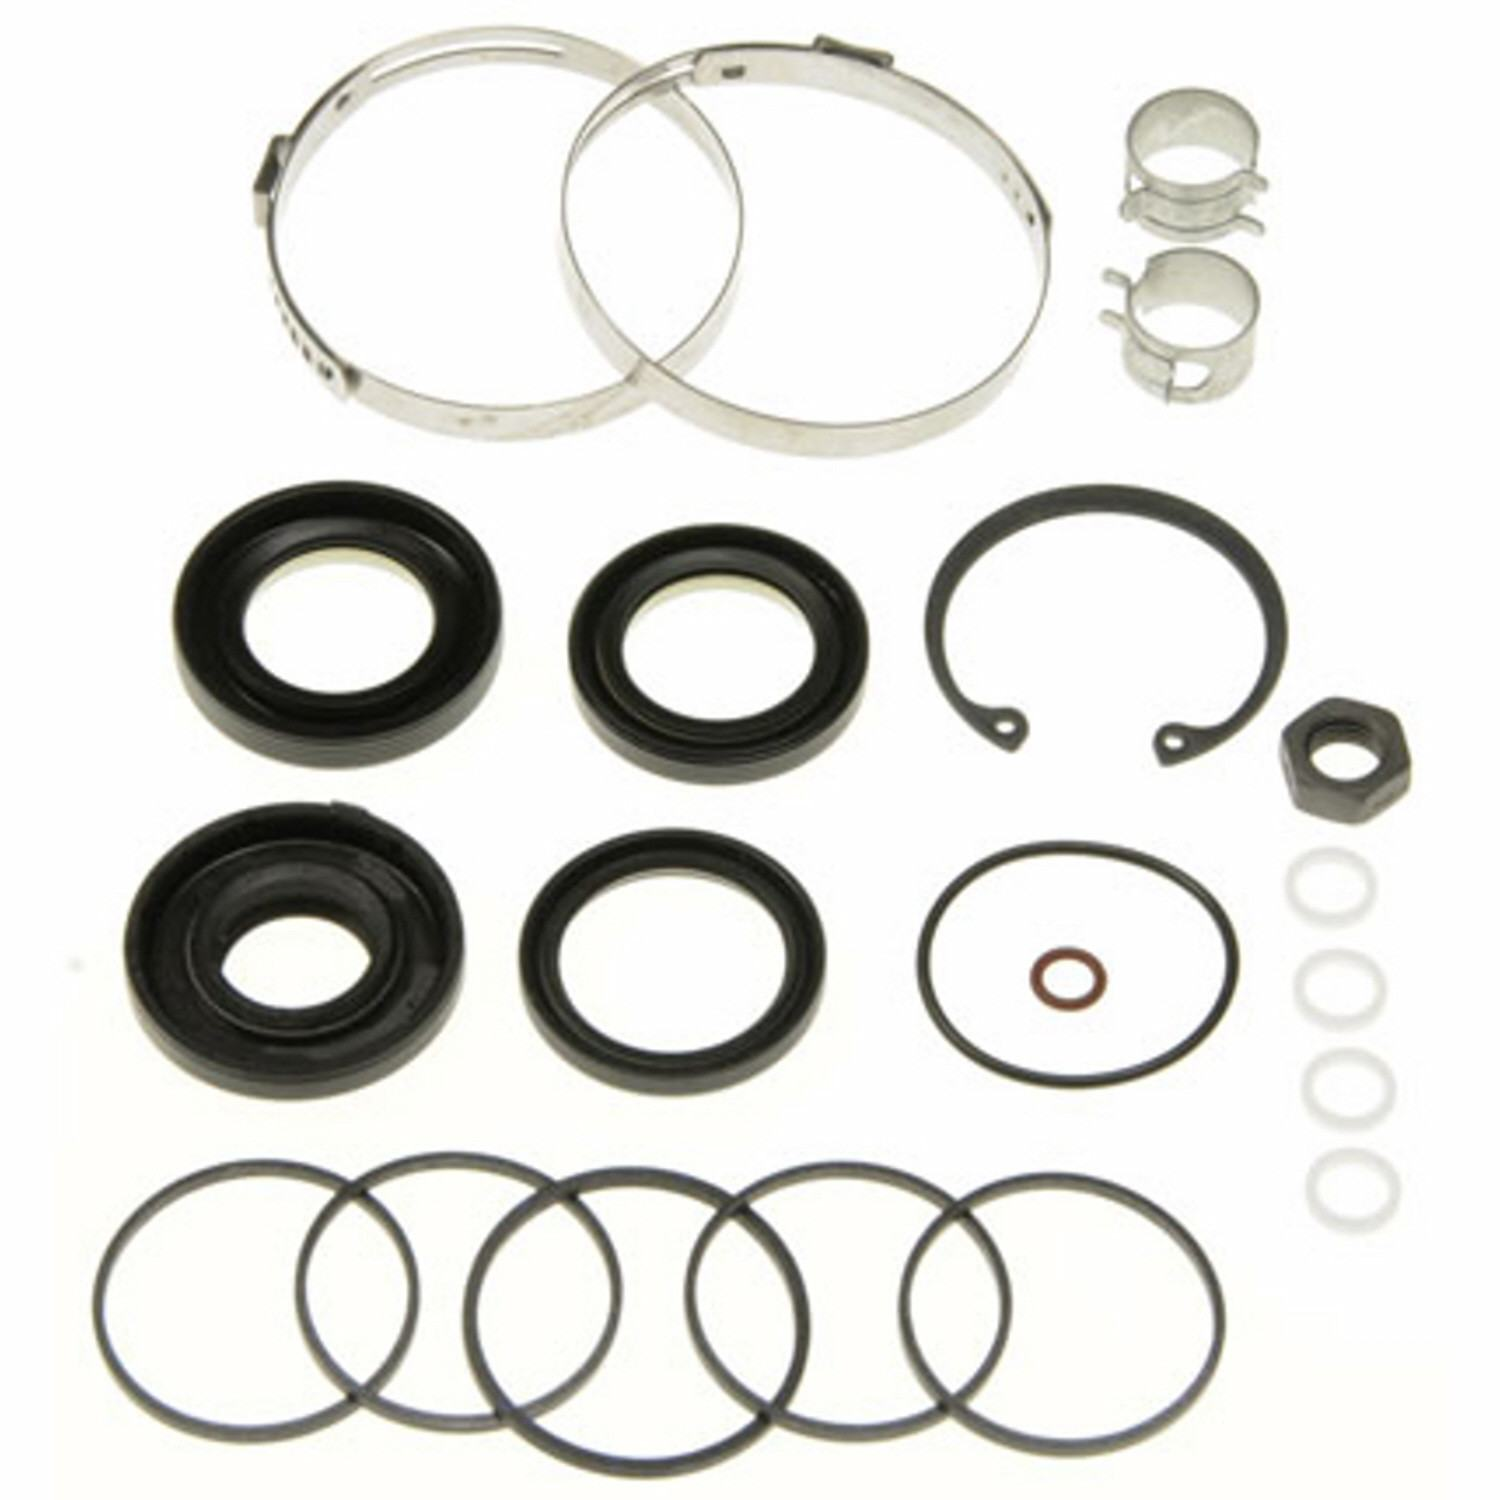 Rack and Pinion Seal Kit EDELMANN 8909 fits 00-11 Ford Focus   eBay